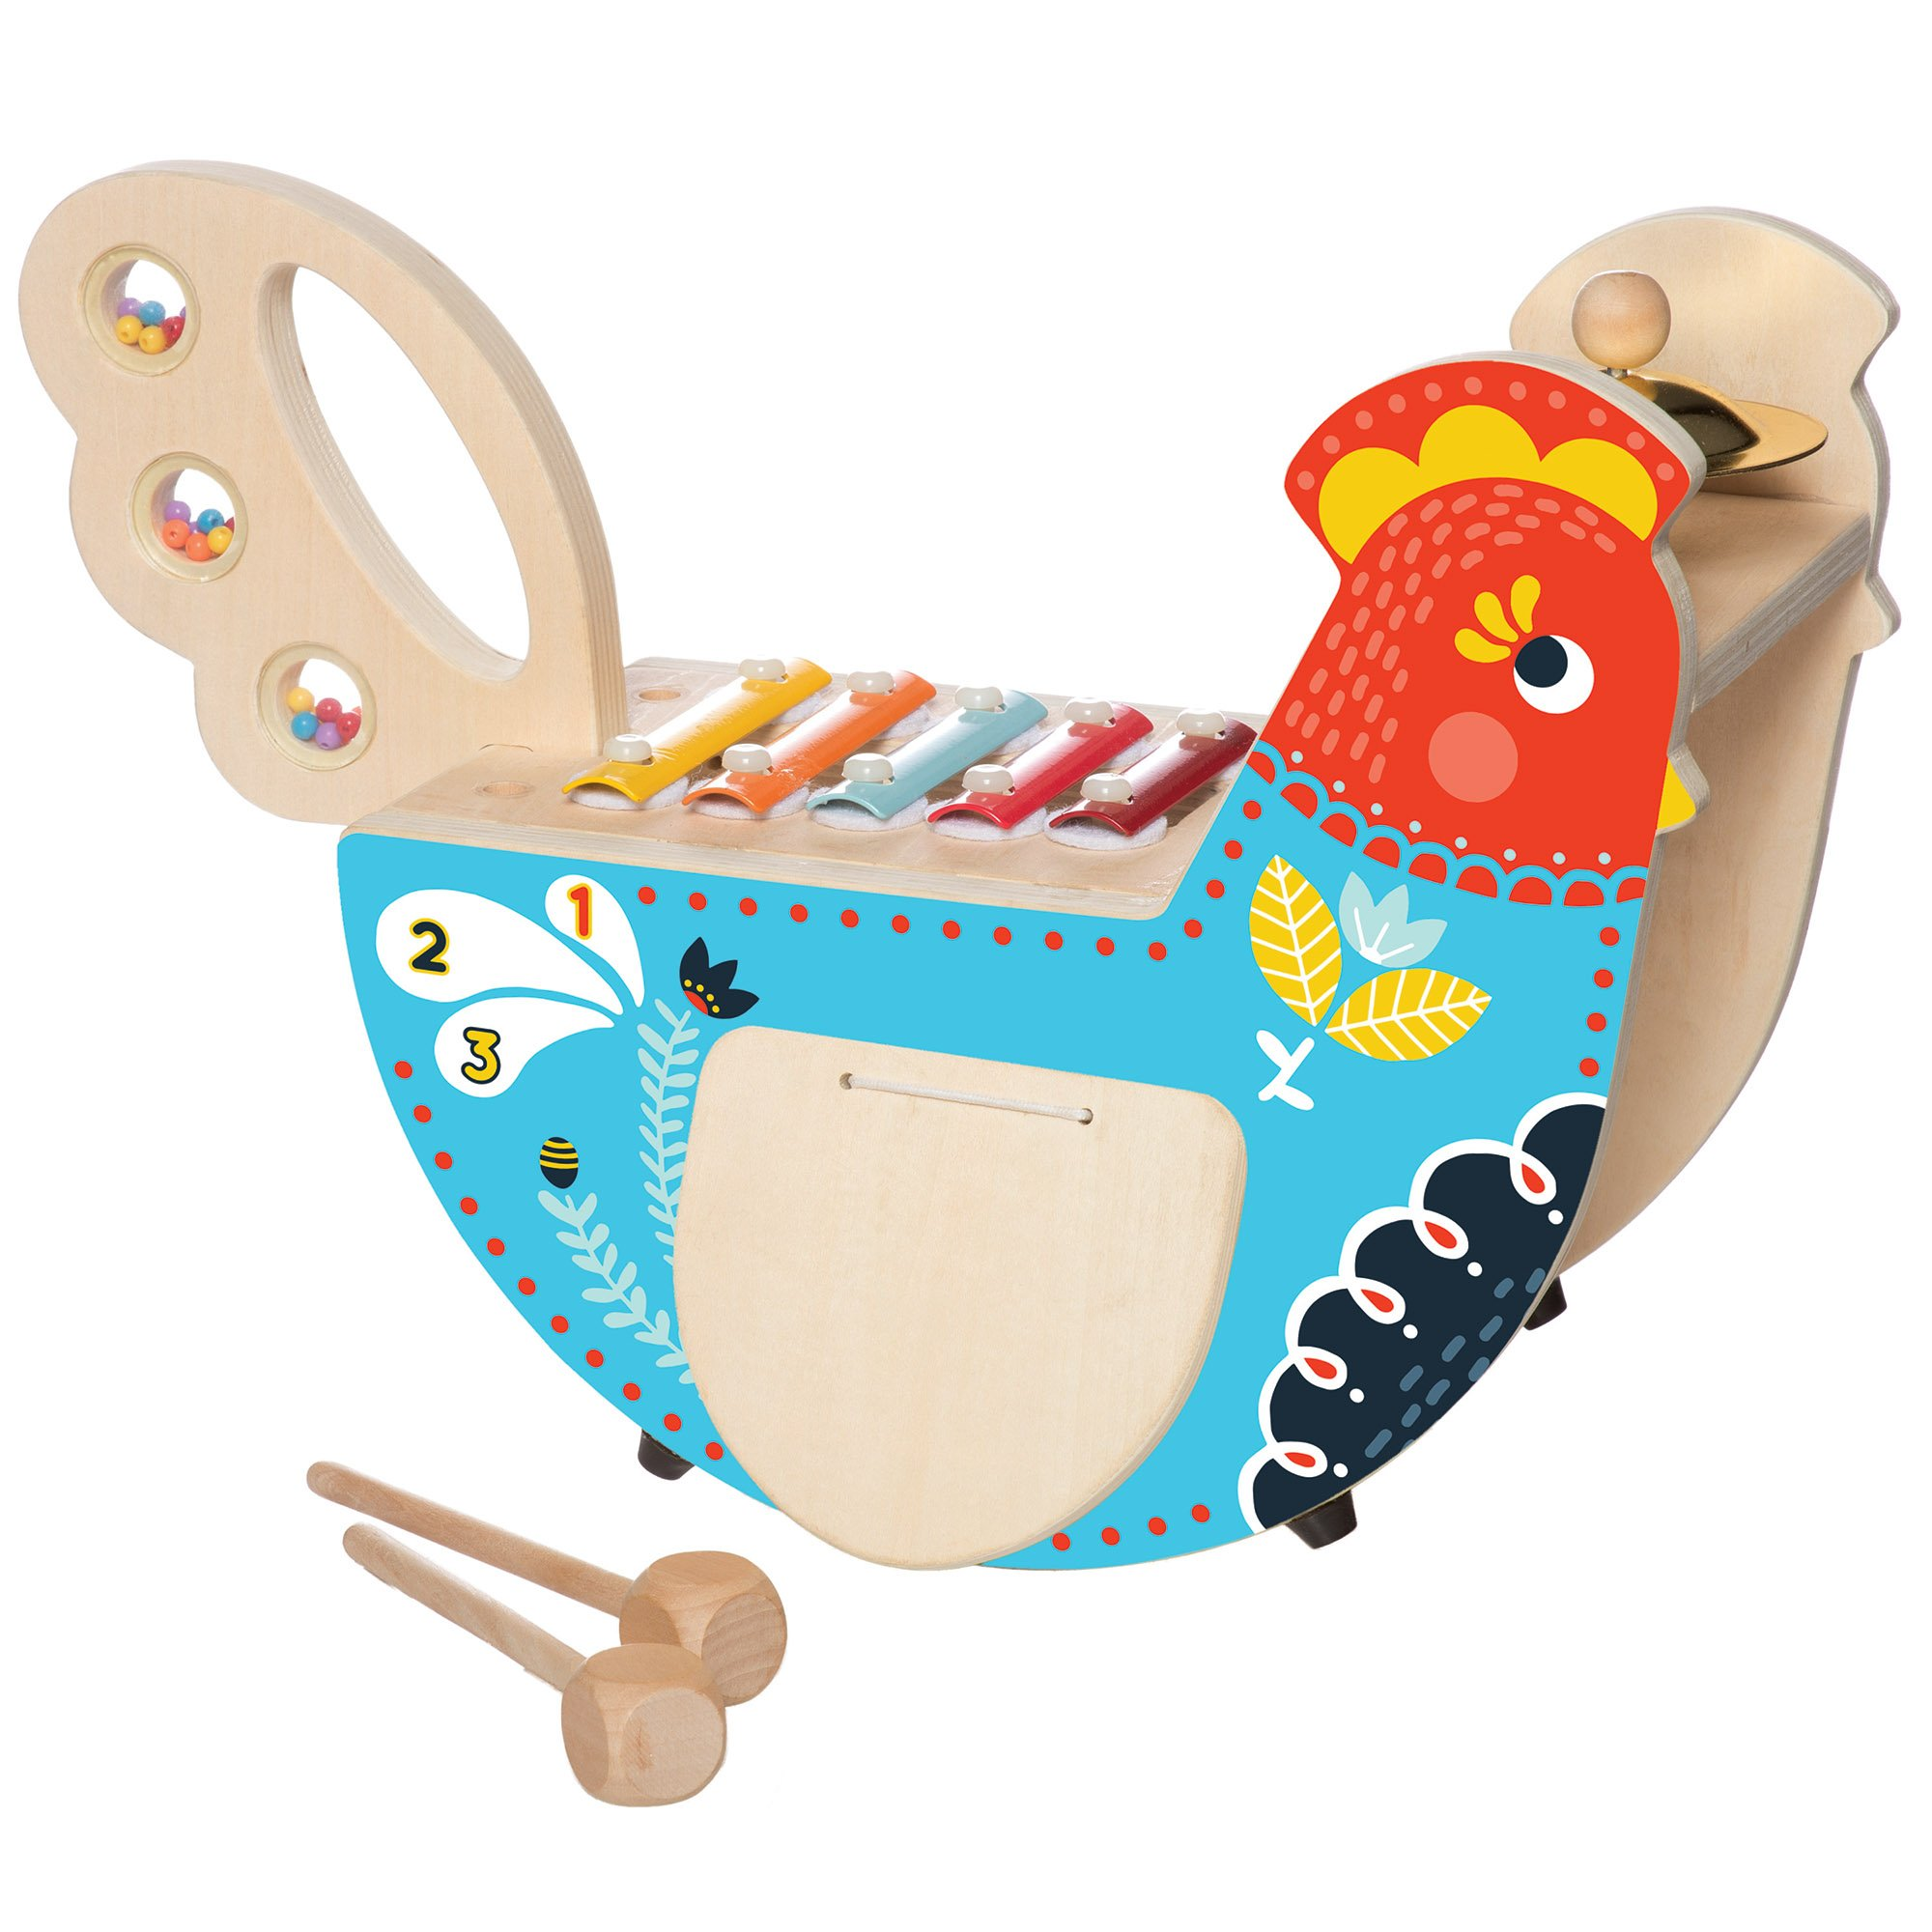 Manhattan Toy Musical Chicken Wooden Instrument for Toddlers with Xylophone, Drumsticks, Cymbal and Maraca by Manhattan Toy